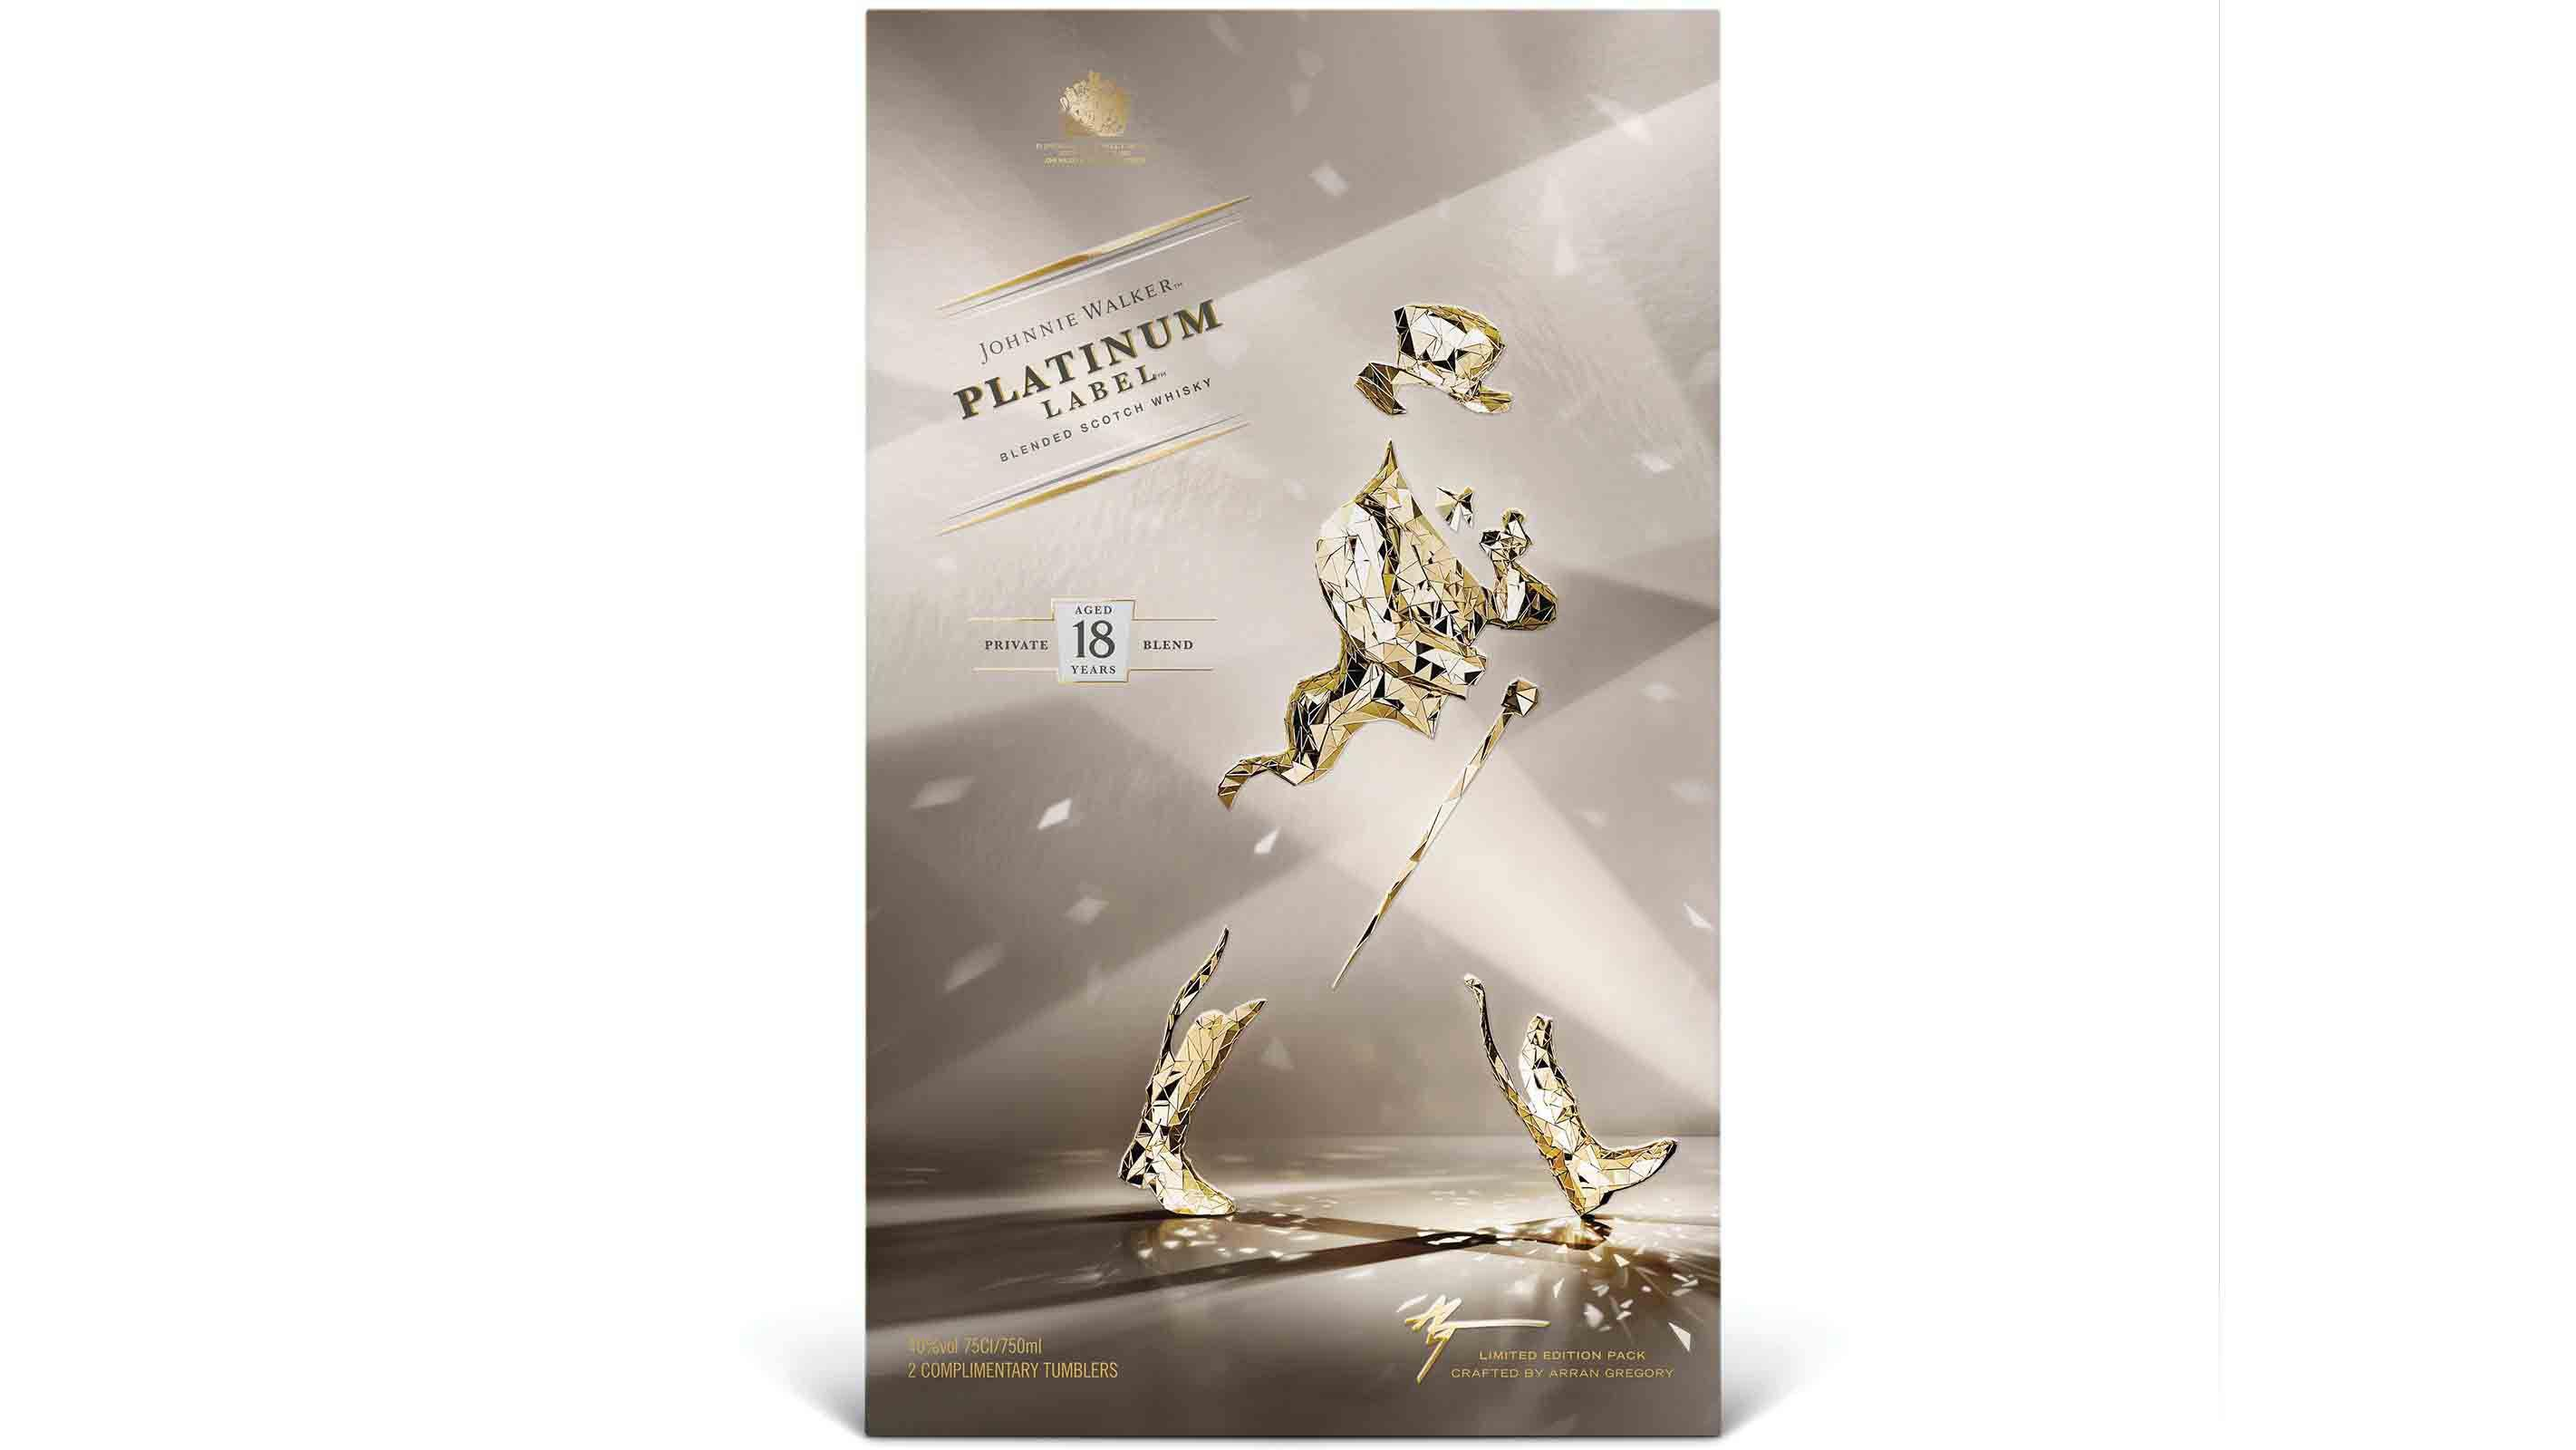 Pack de Johnnie Walker Platinum 18 Year Old Limited Edition diseñado por Arran Gregory